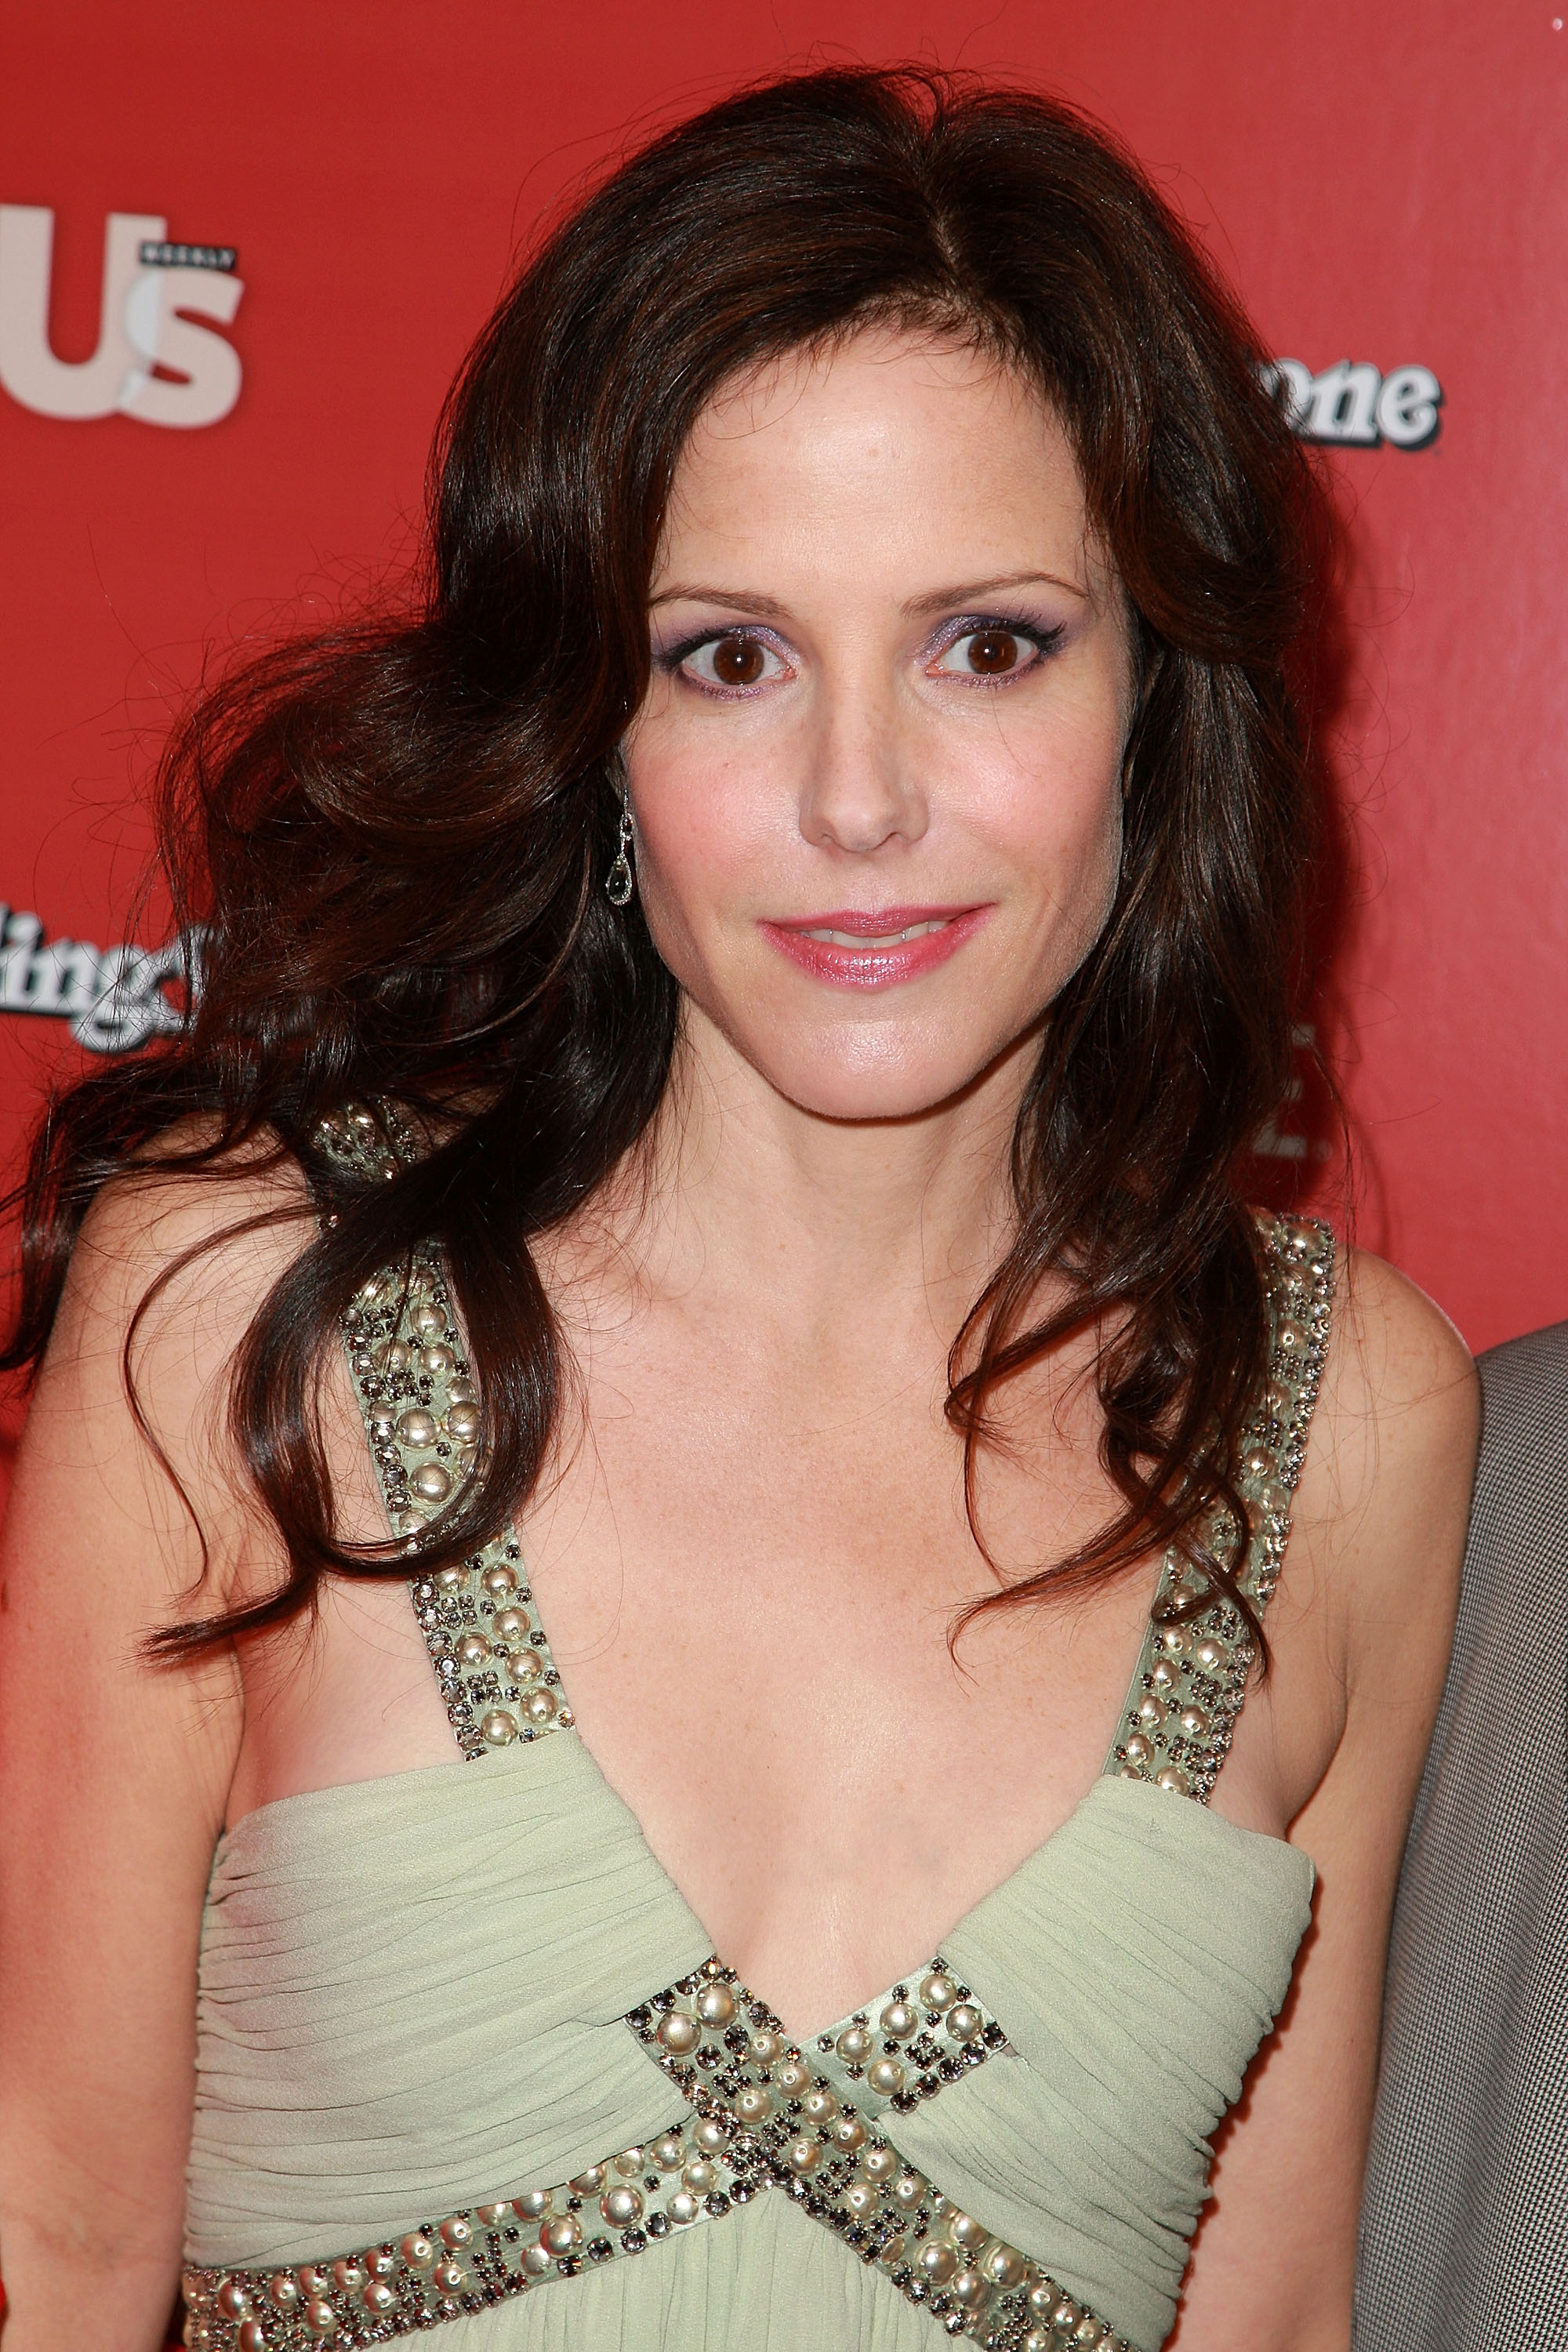 40441_Celebutopia-Marie-Louise_Parker-Showtime4s_Dexter_And_Californication_Season_Premieres_in_New_York_City-14_122_711lo.jpg